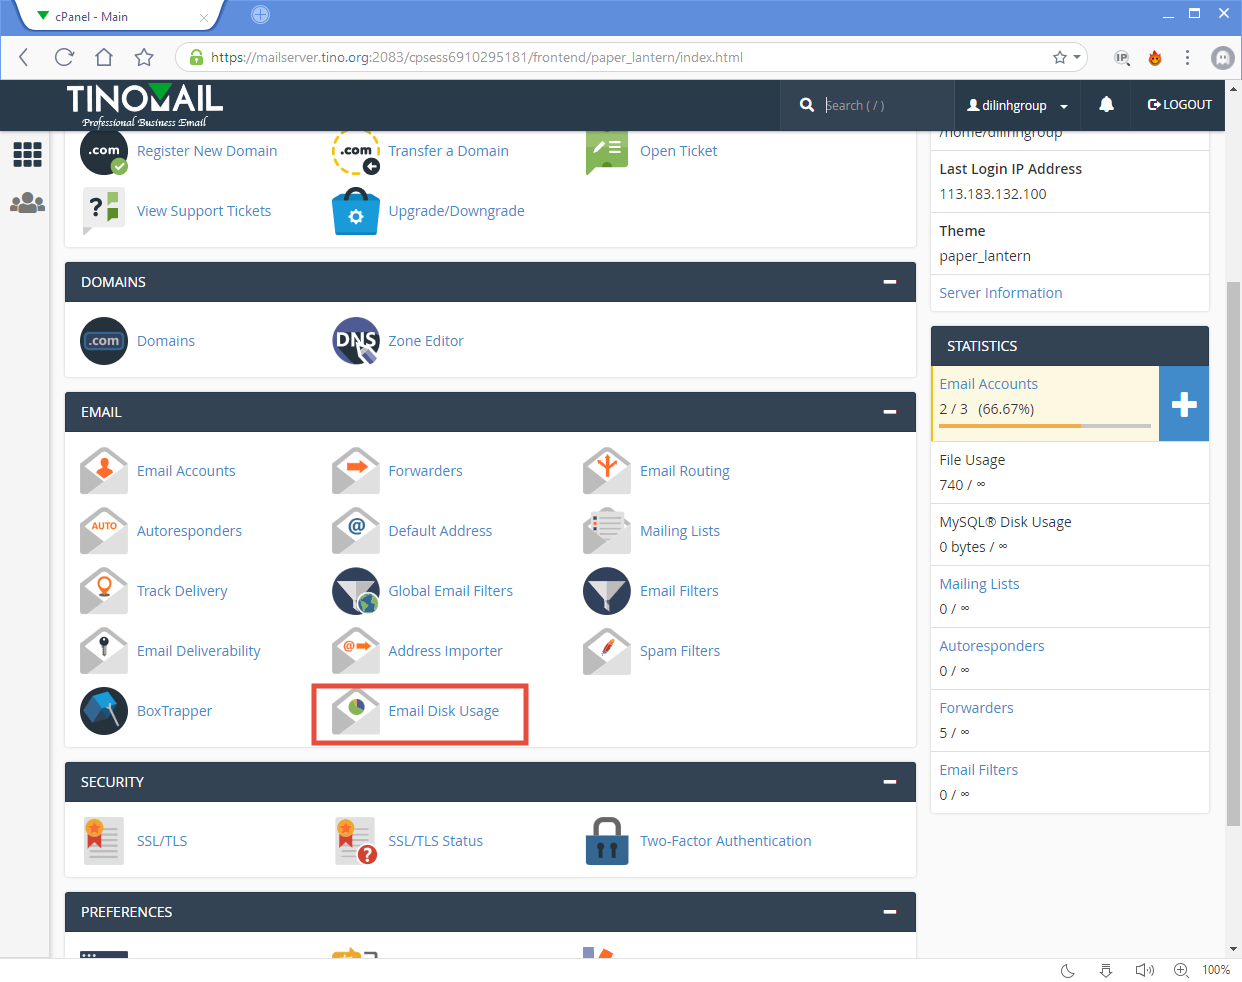 [cPanel] - Email Disk Usage 3